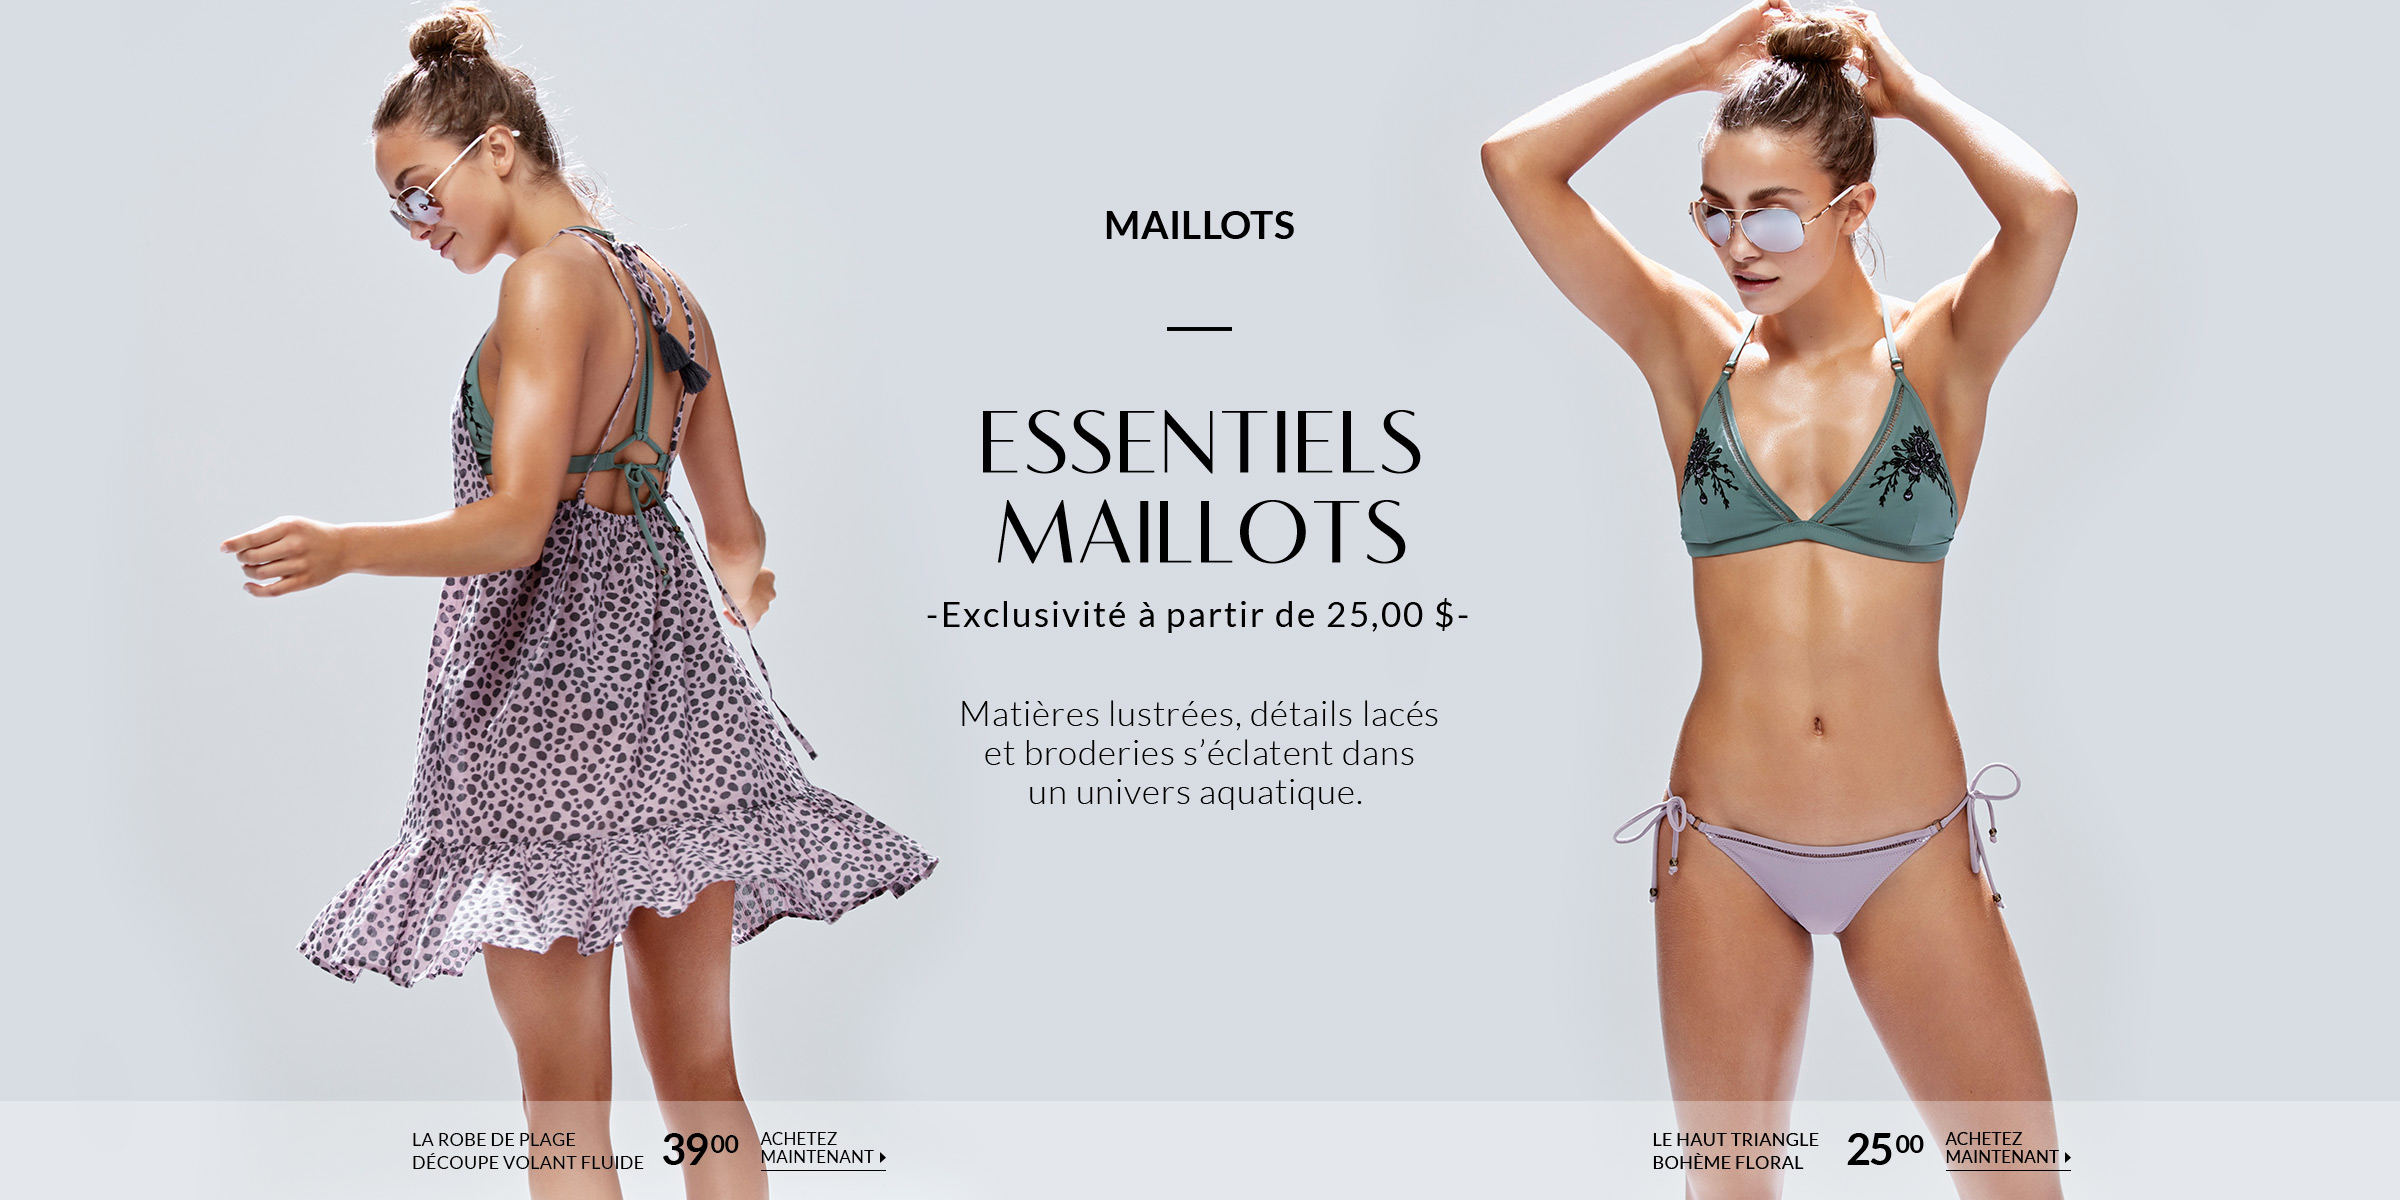 P18-ACCUEIL-FEMME-MAILLOTS_Nos essentiels maillots.psd